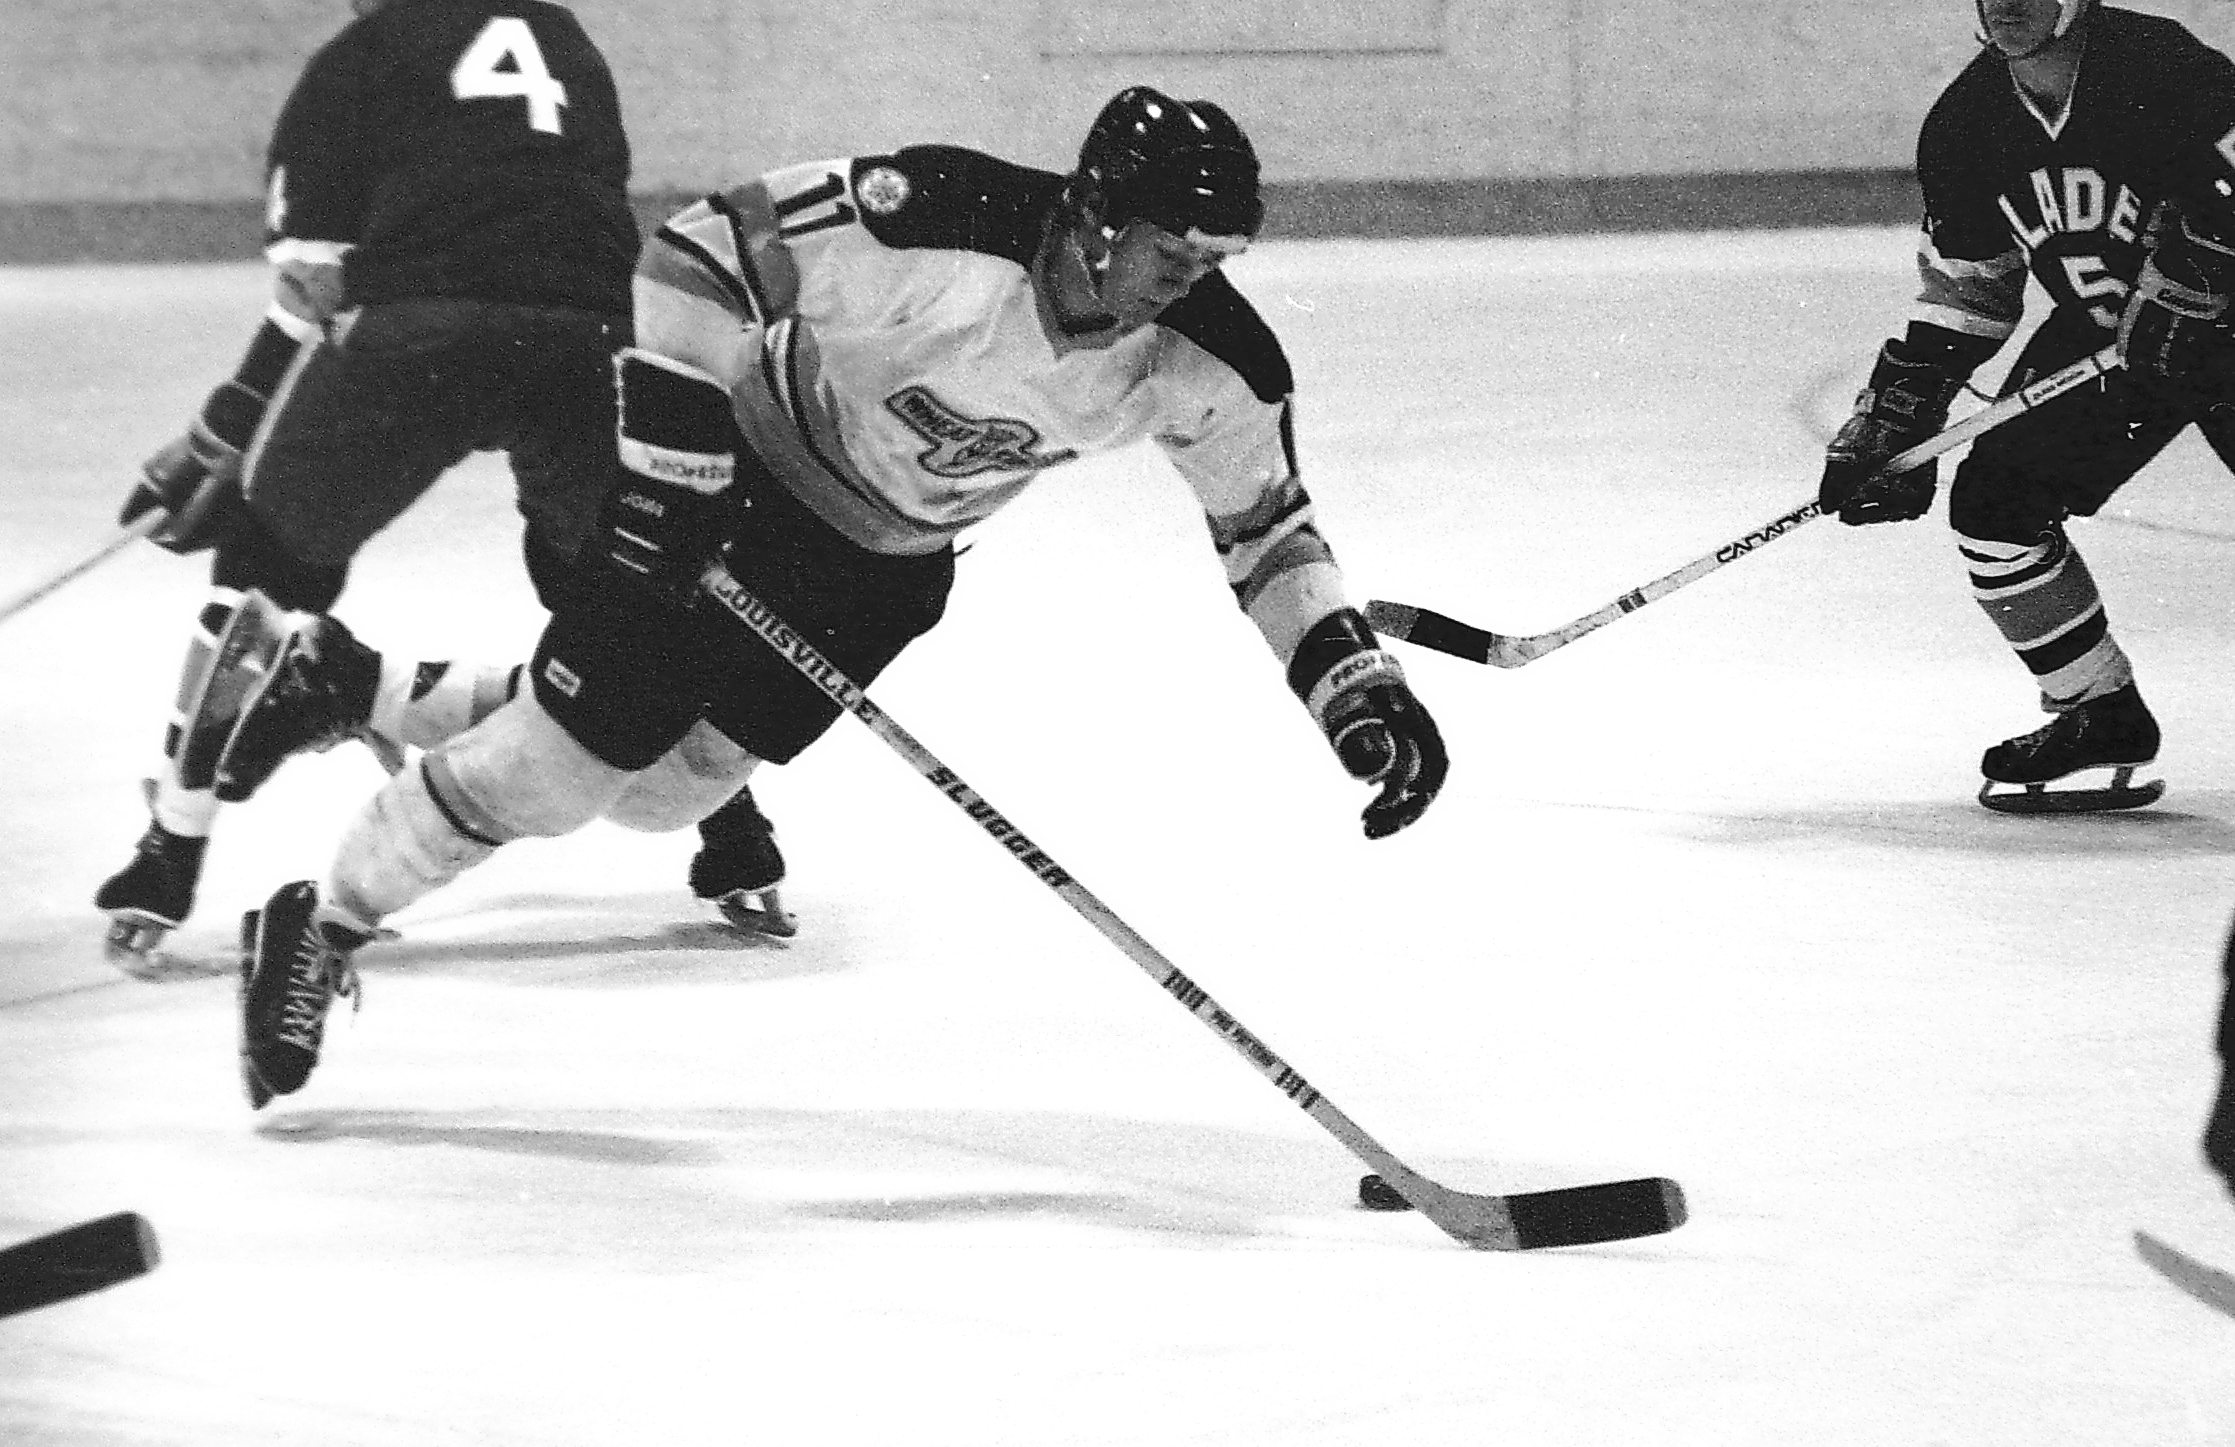 Brant Kiessig became a terrific penalty killer while also scoring 29 goals for the Wheat Kings.